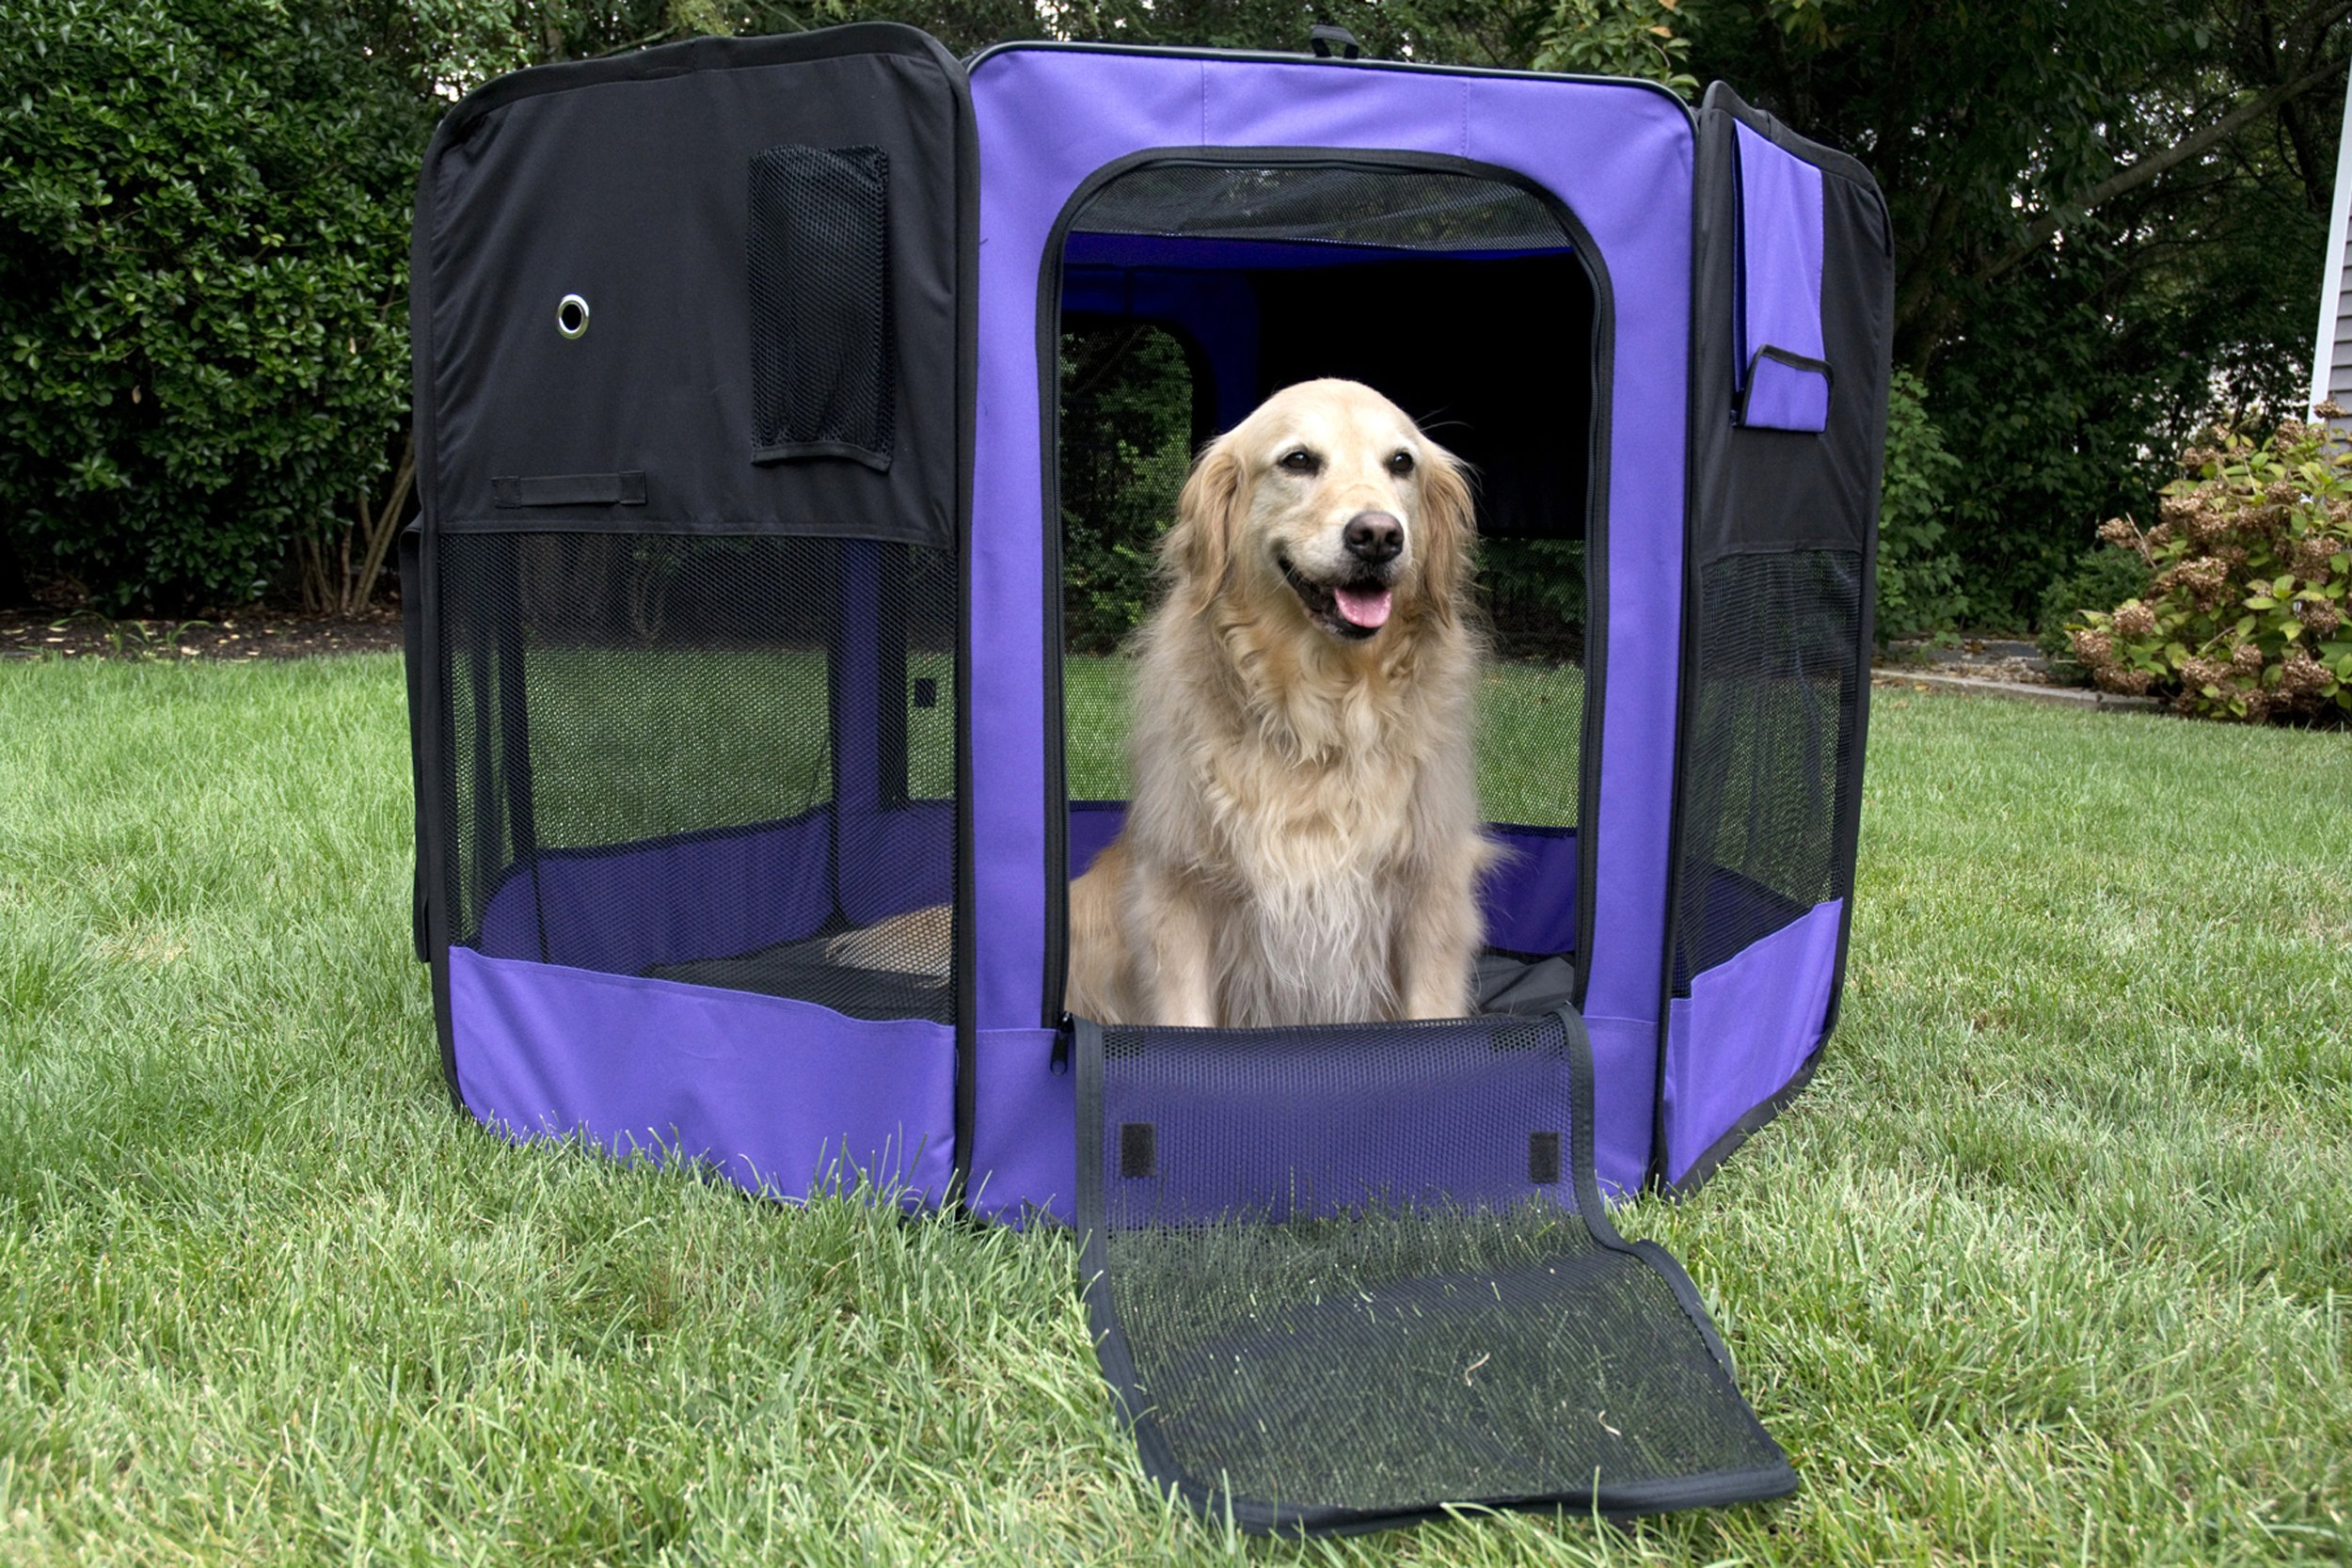 Iconic Pet Portable Pet Soft Play Pen, Purple, Small by Iconic Pet (Image #9)